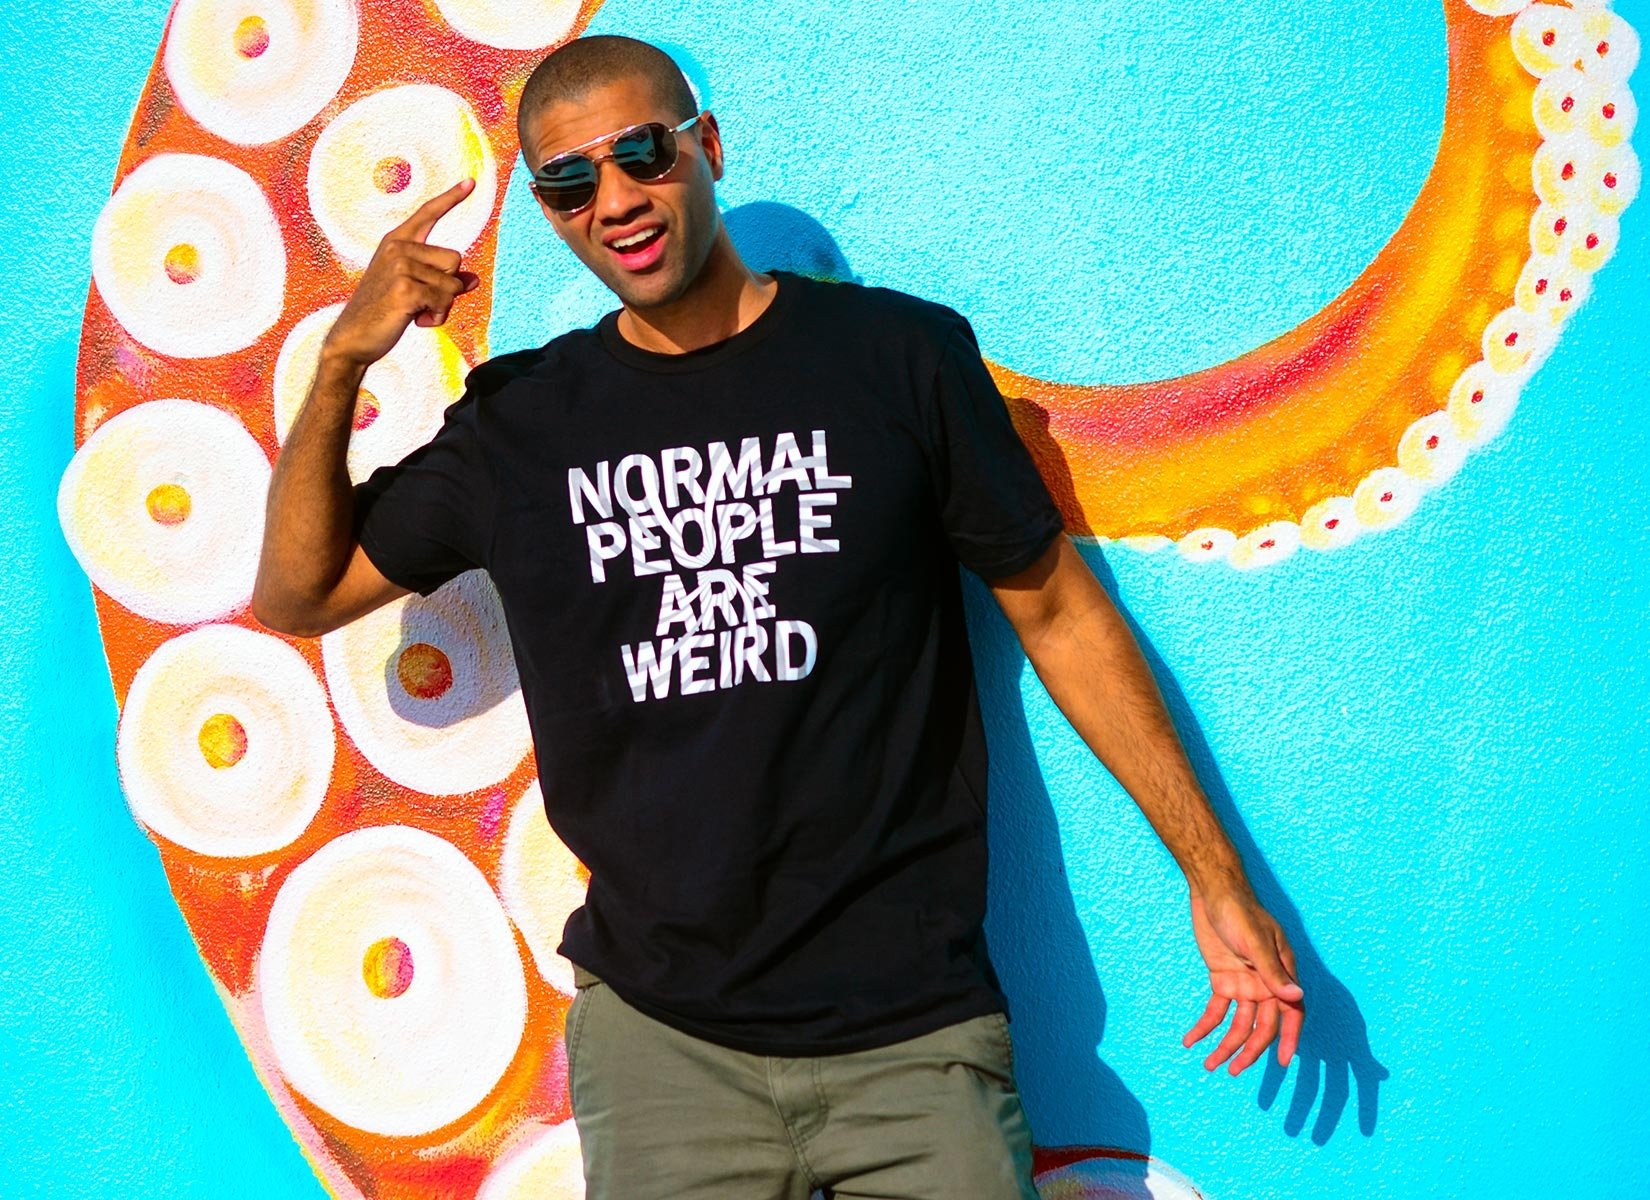 Normal People Are Weird on Mens T-Shirt